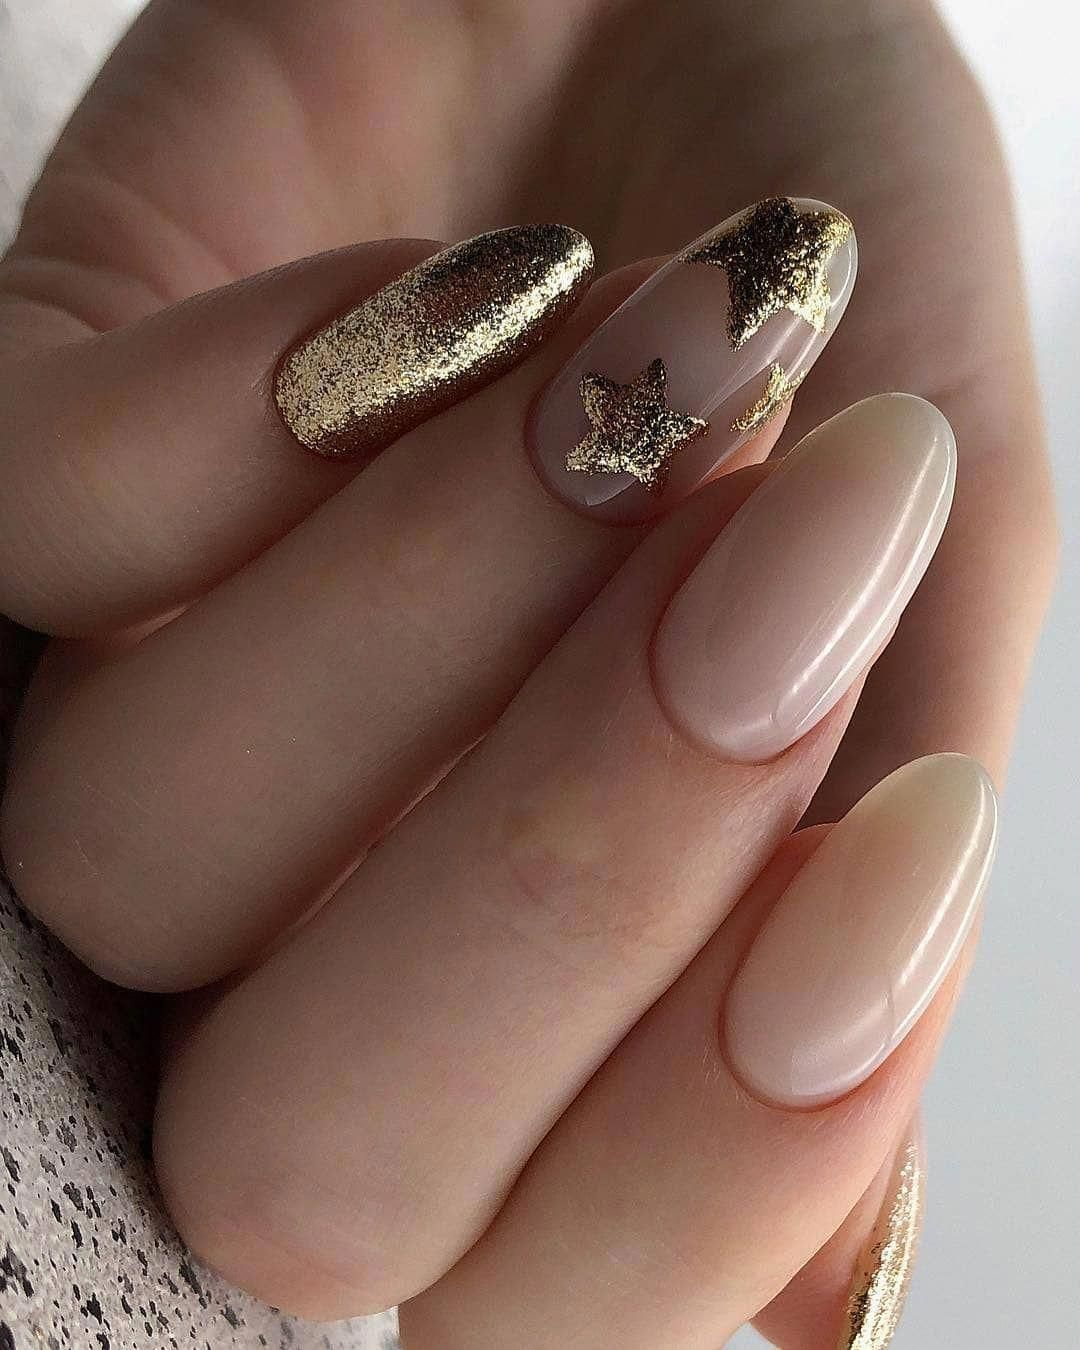 99 New Years Eve Nail Art Designs For Fun Holiday With Images